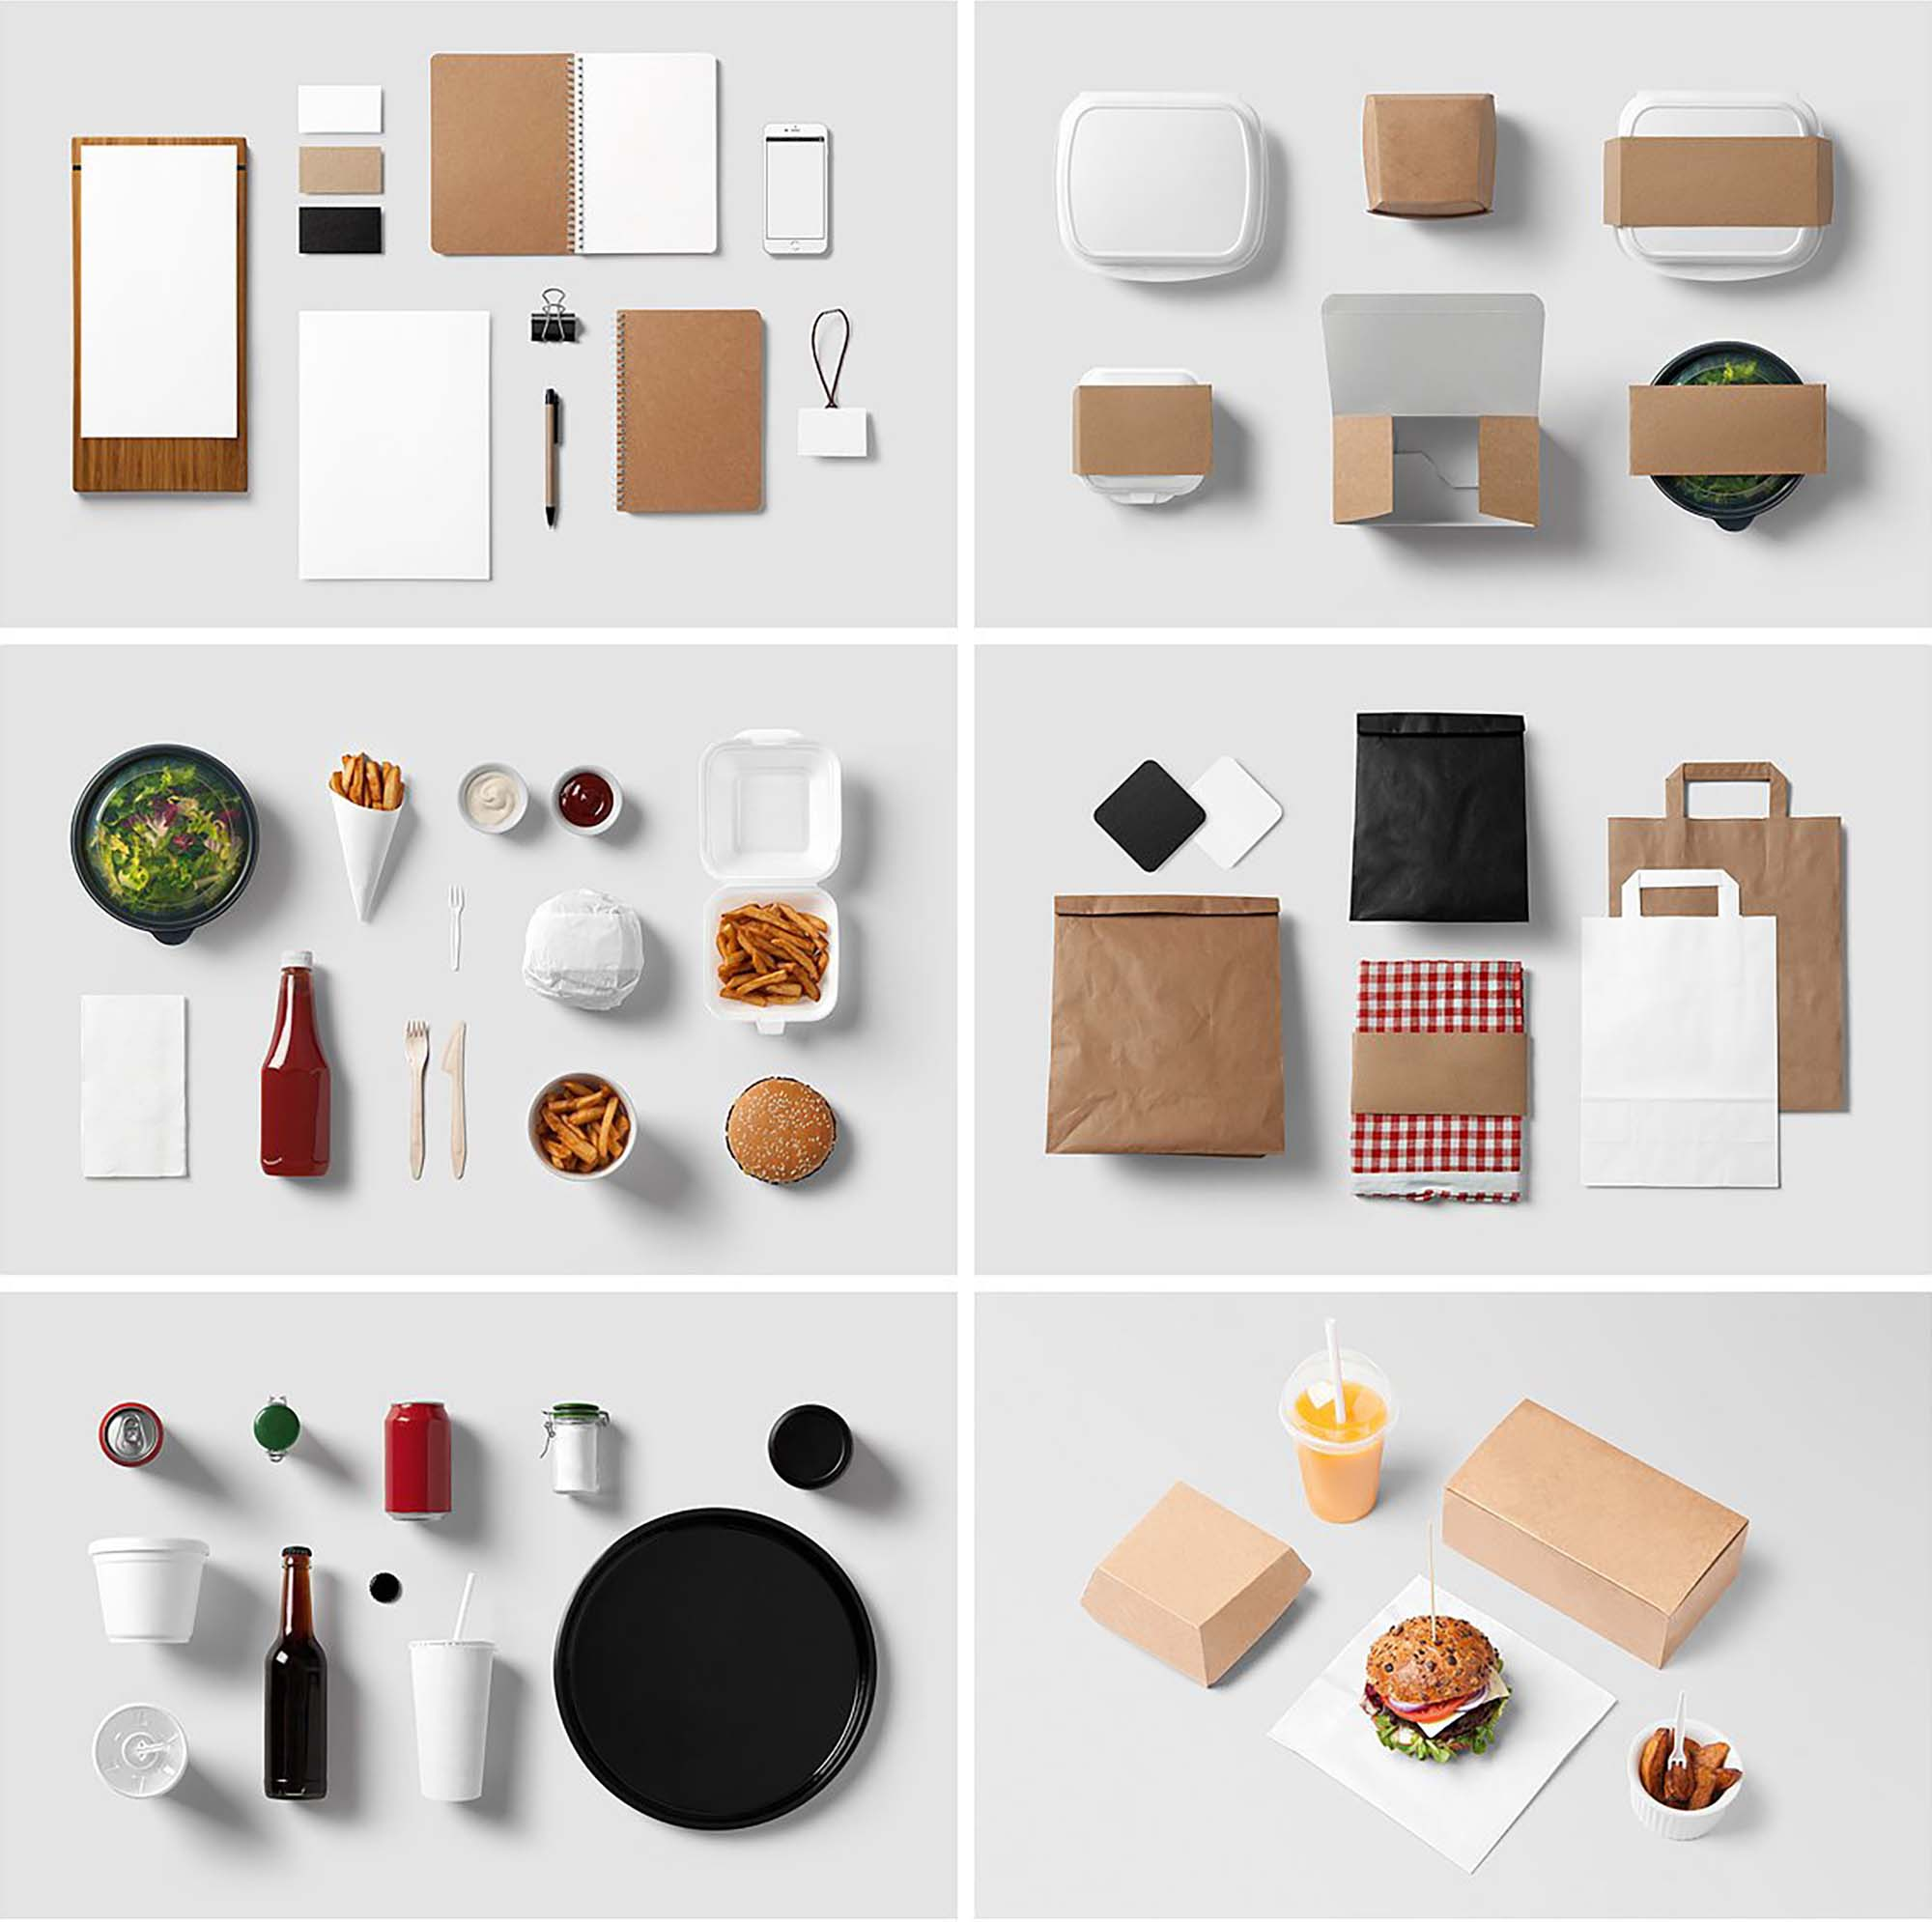 Burger Bar Stationery Mockup 2